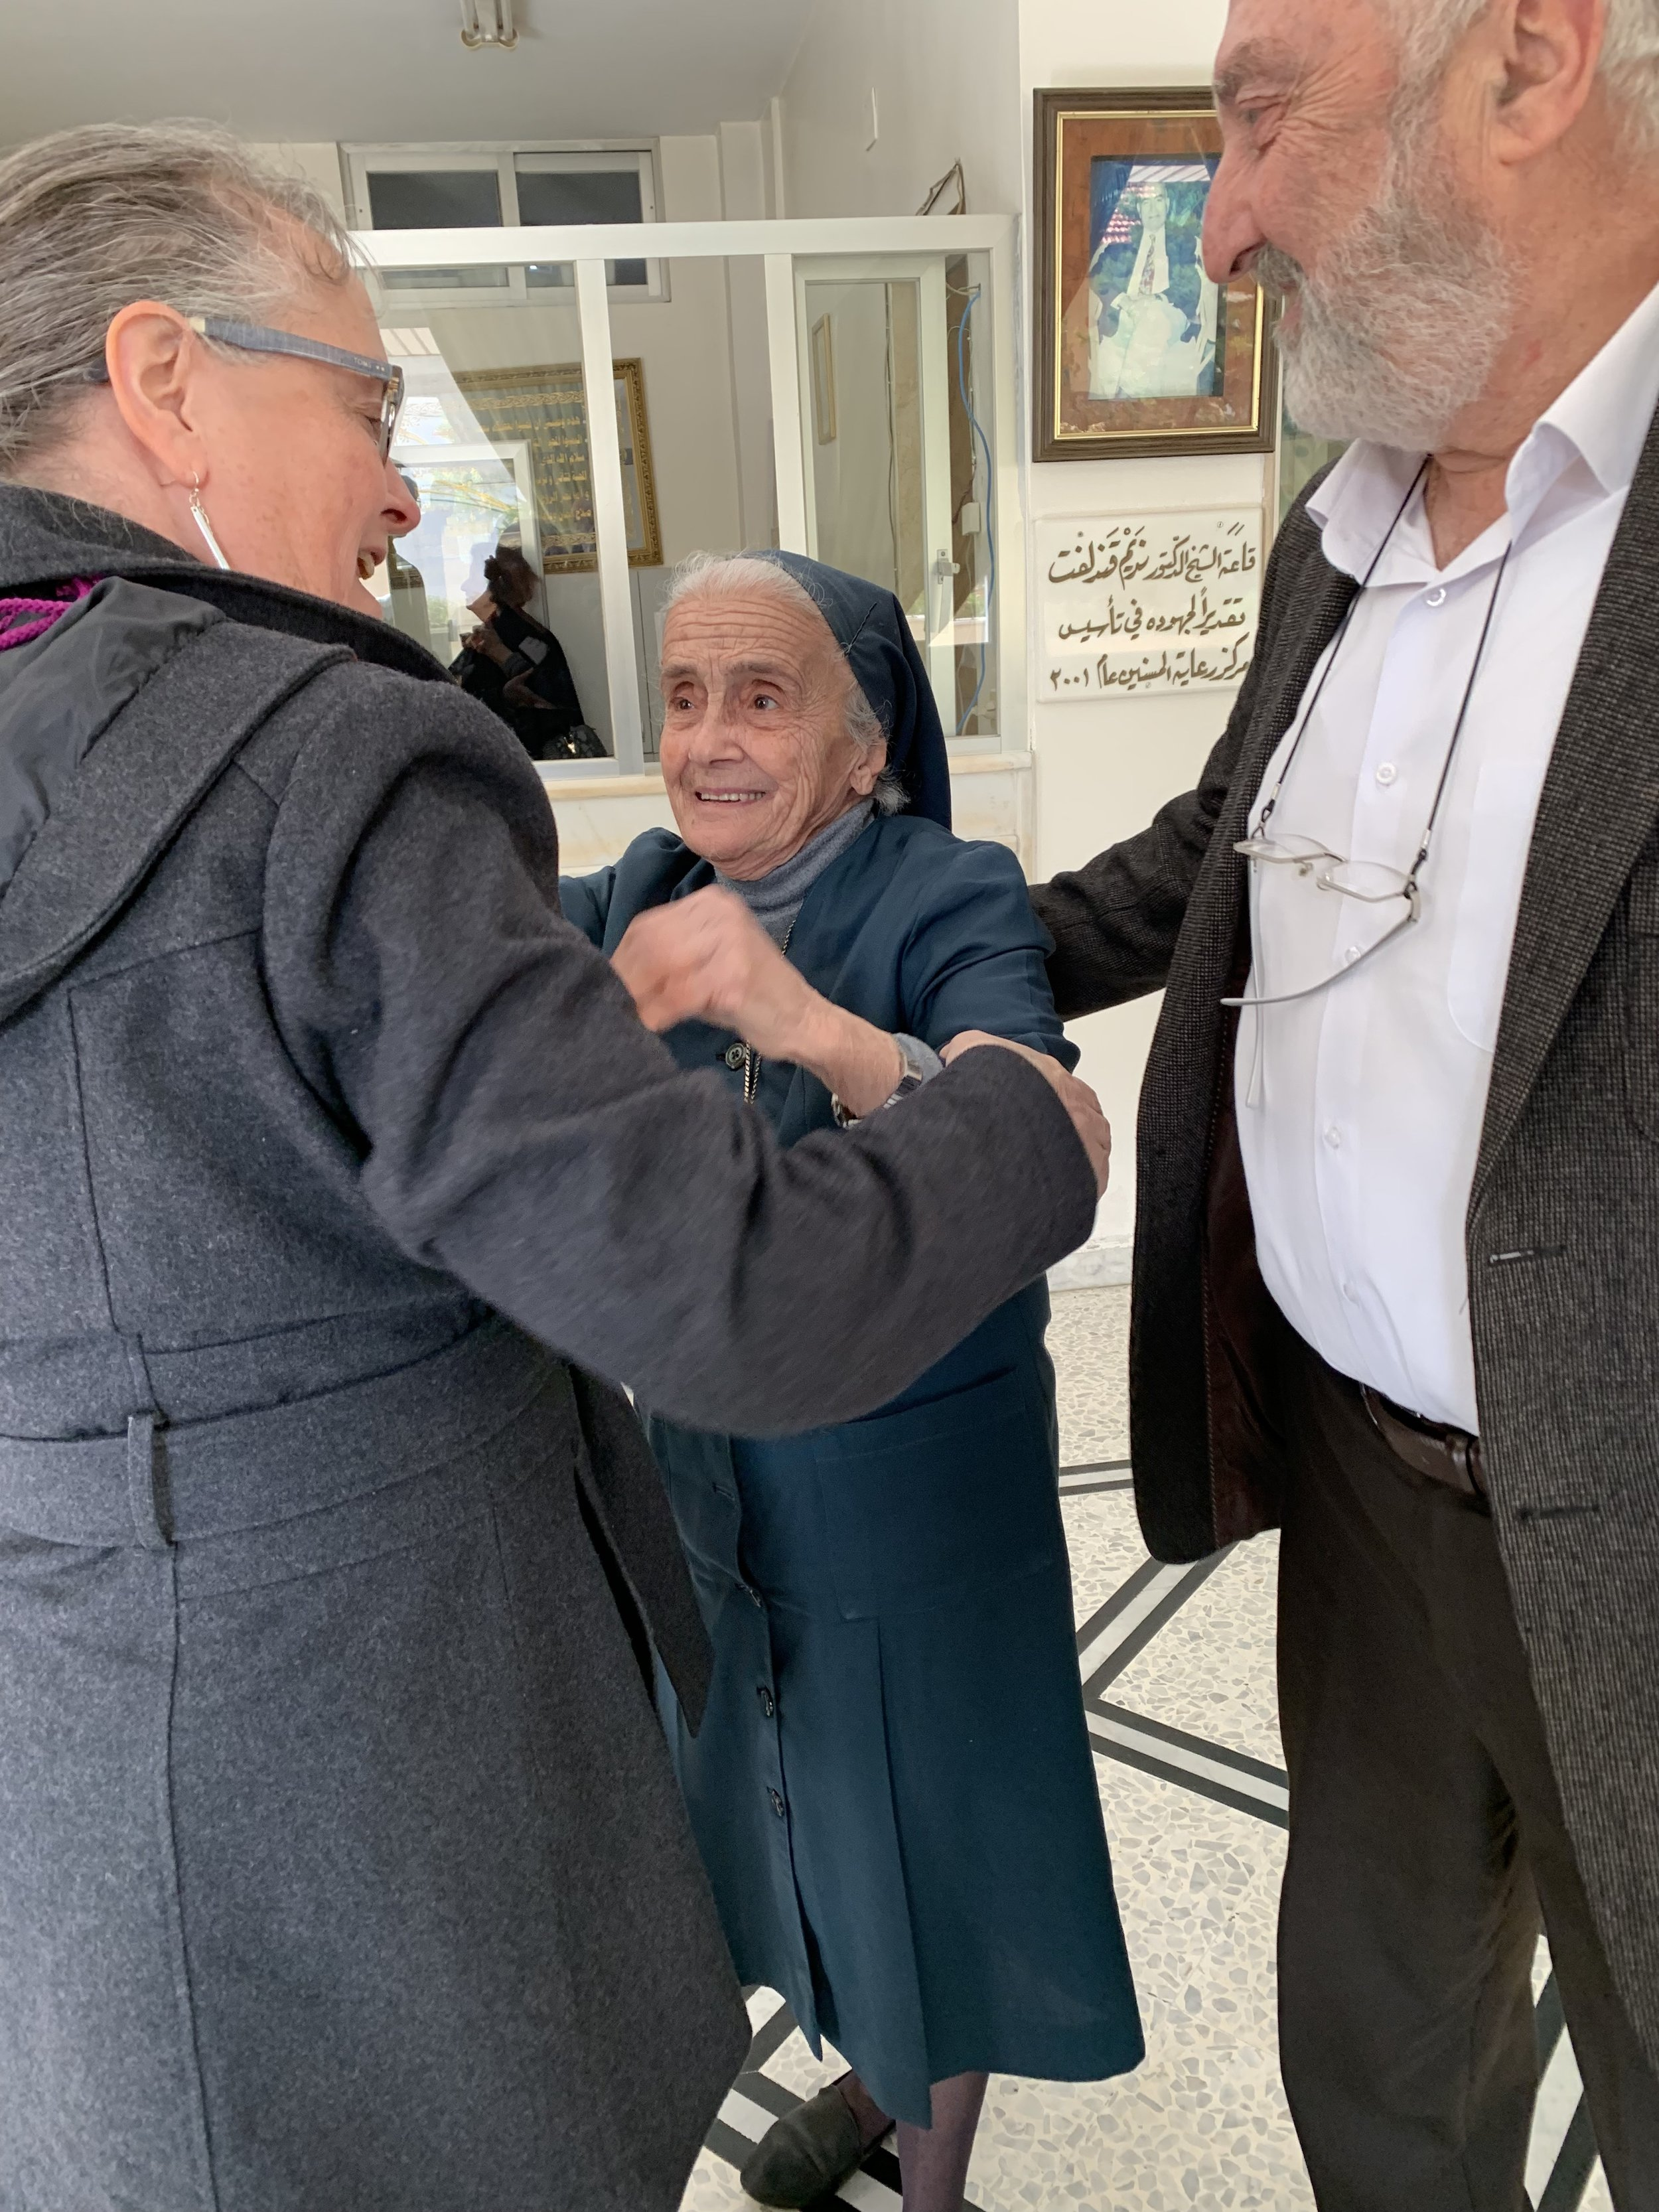 In the Home for the Elderly in Homs with Sr. Valentina who runs this respite care center and elder Marwan